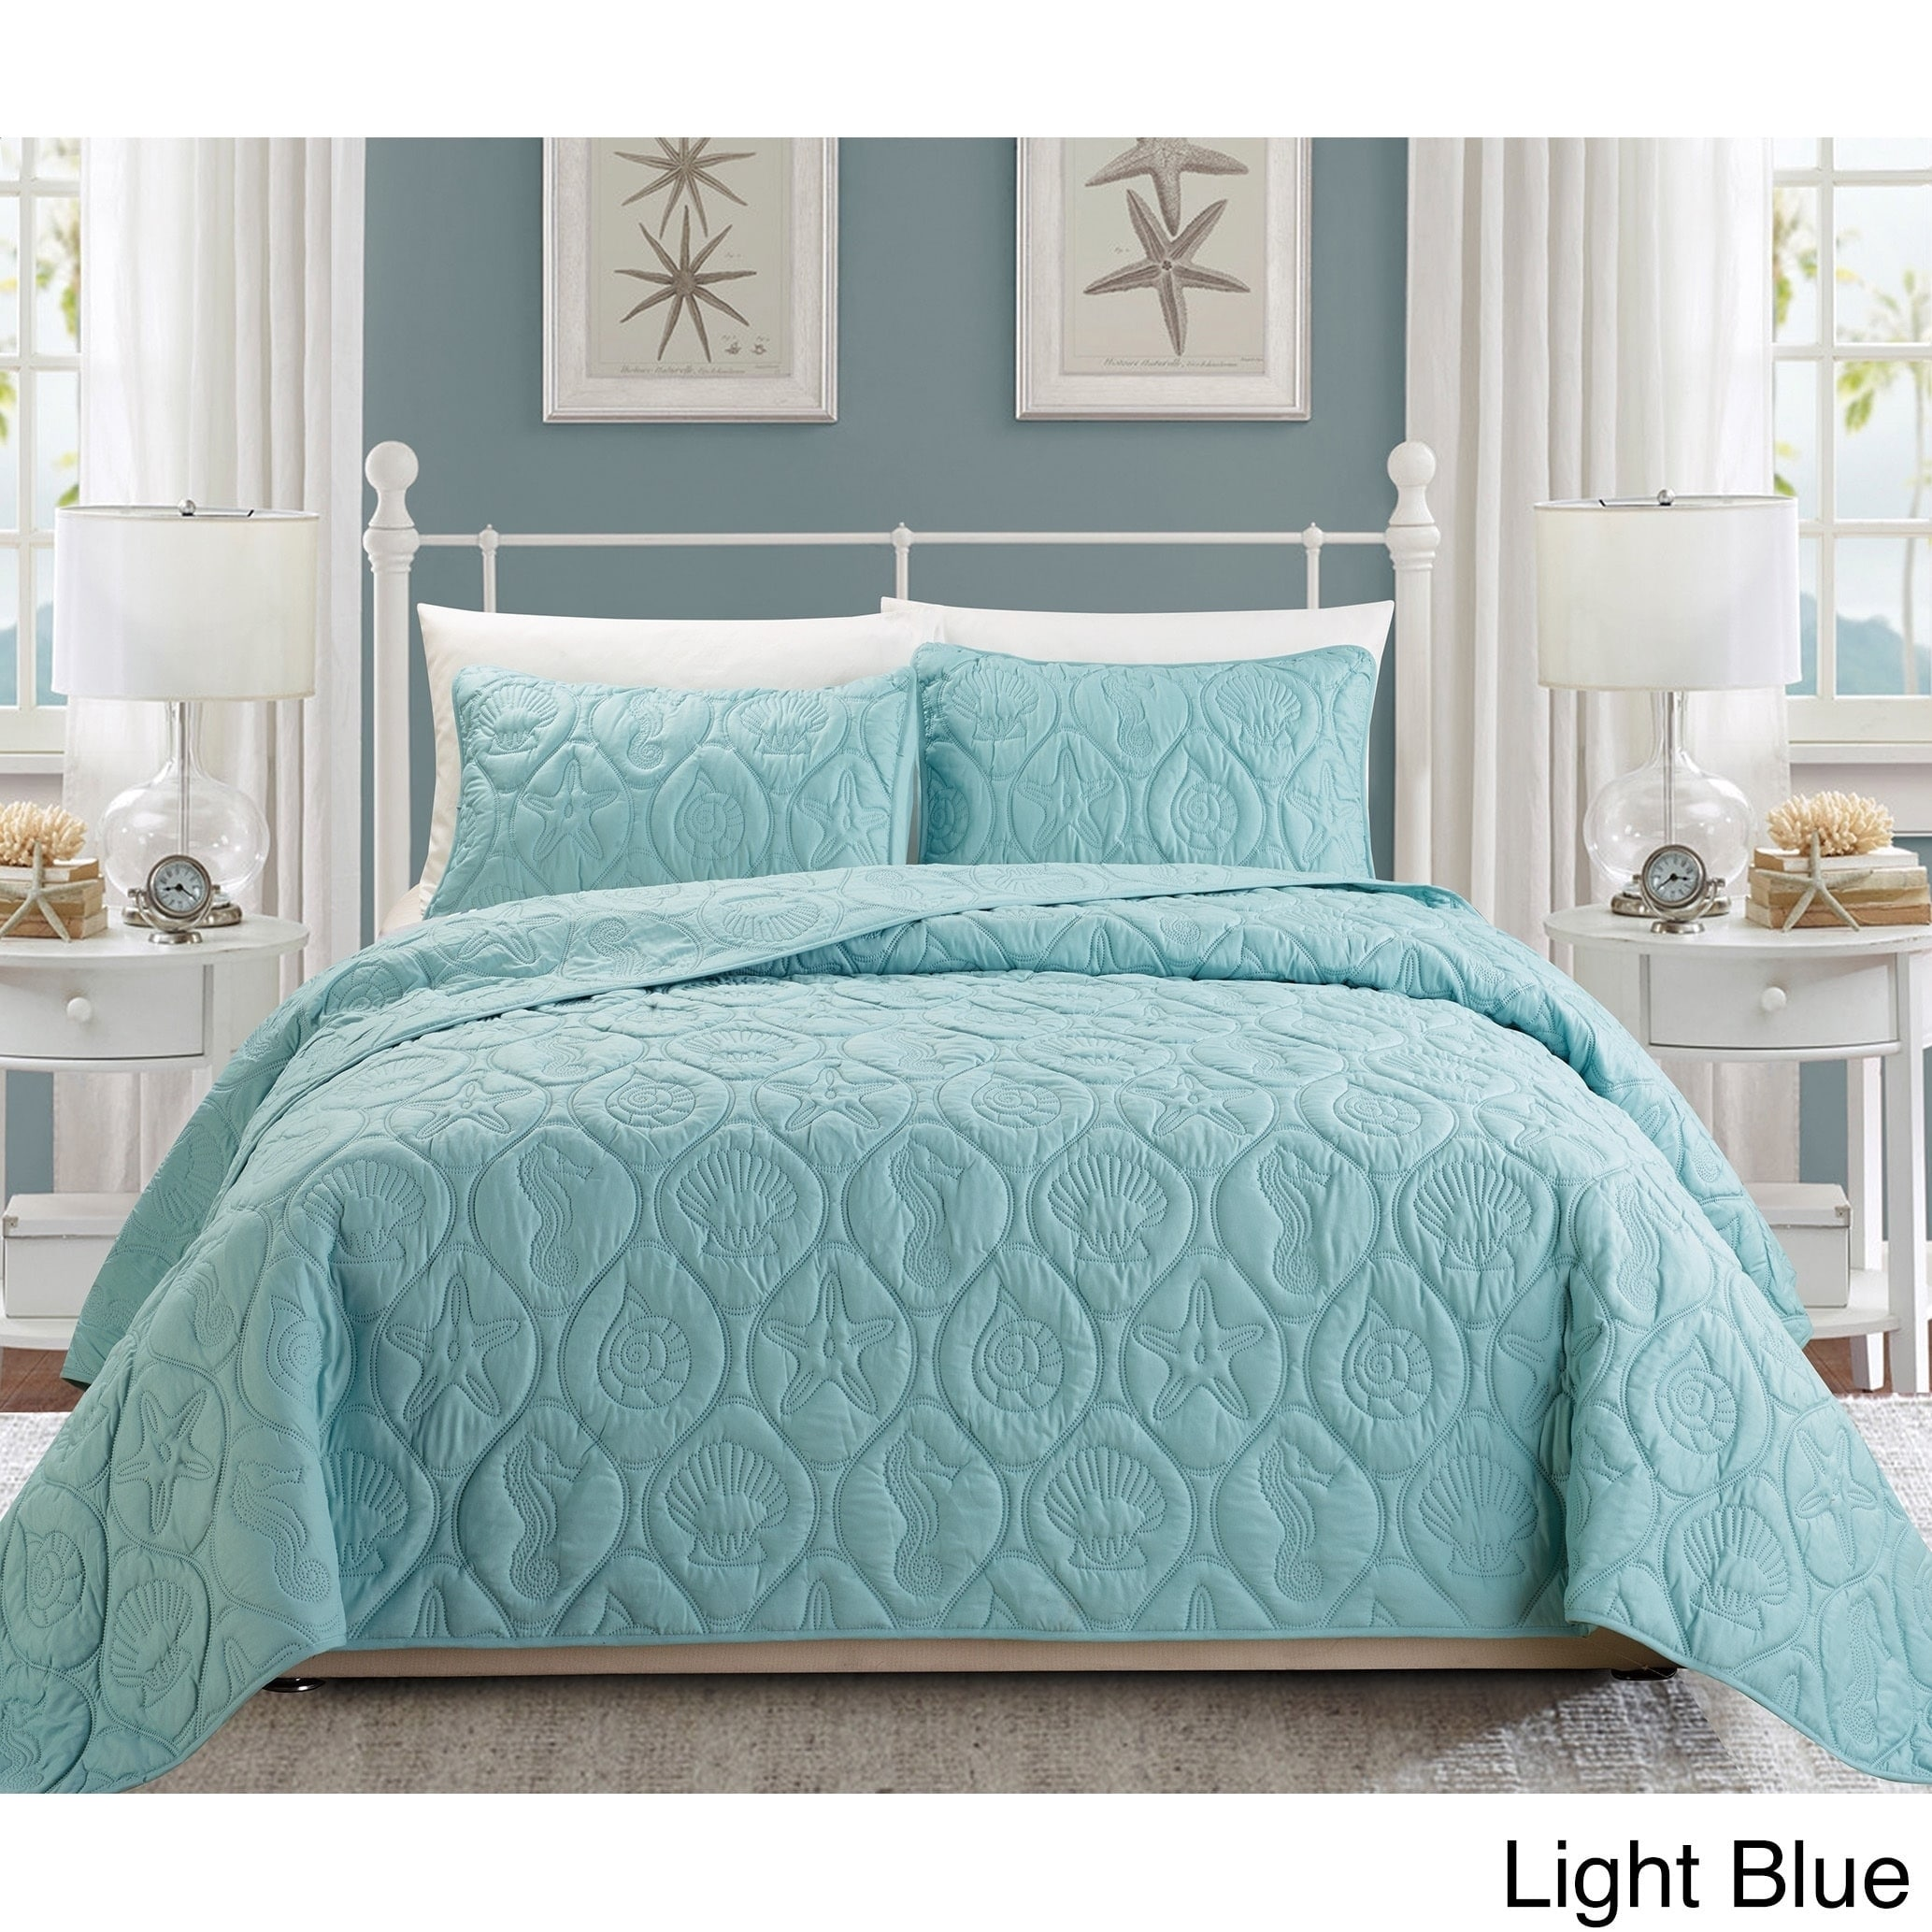 oversized mens barn turquoise bed comforters zq set comely queen comforter comforte impeccable king pottery gla bedding sets coral trendy most dream for